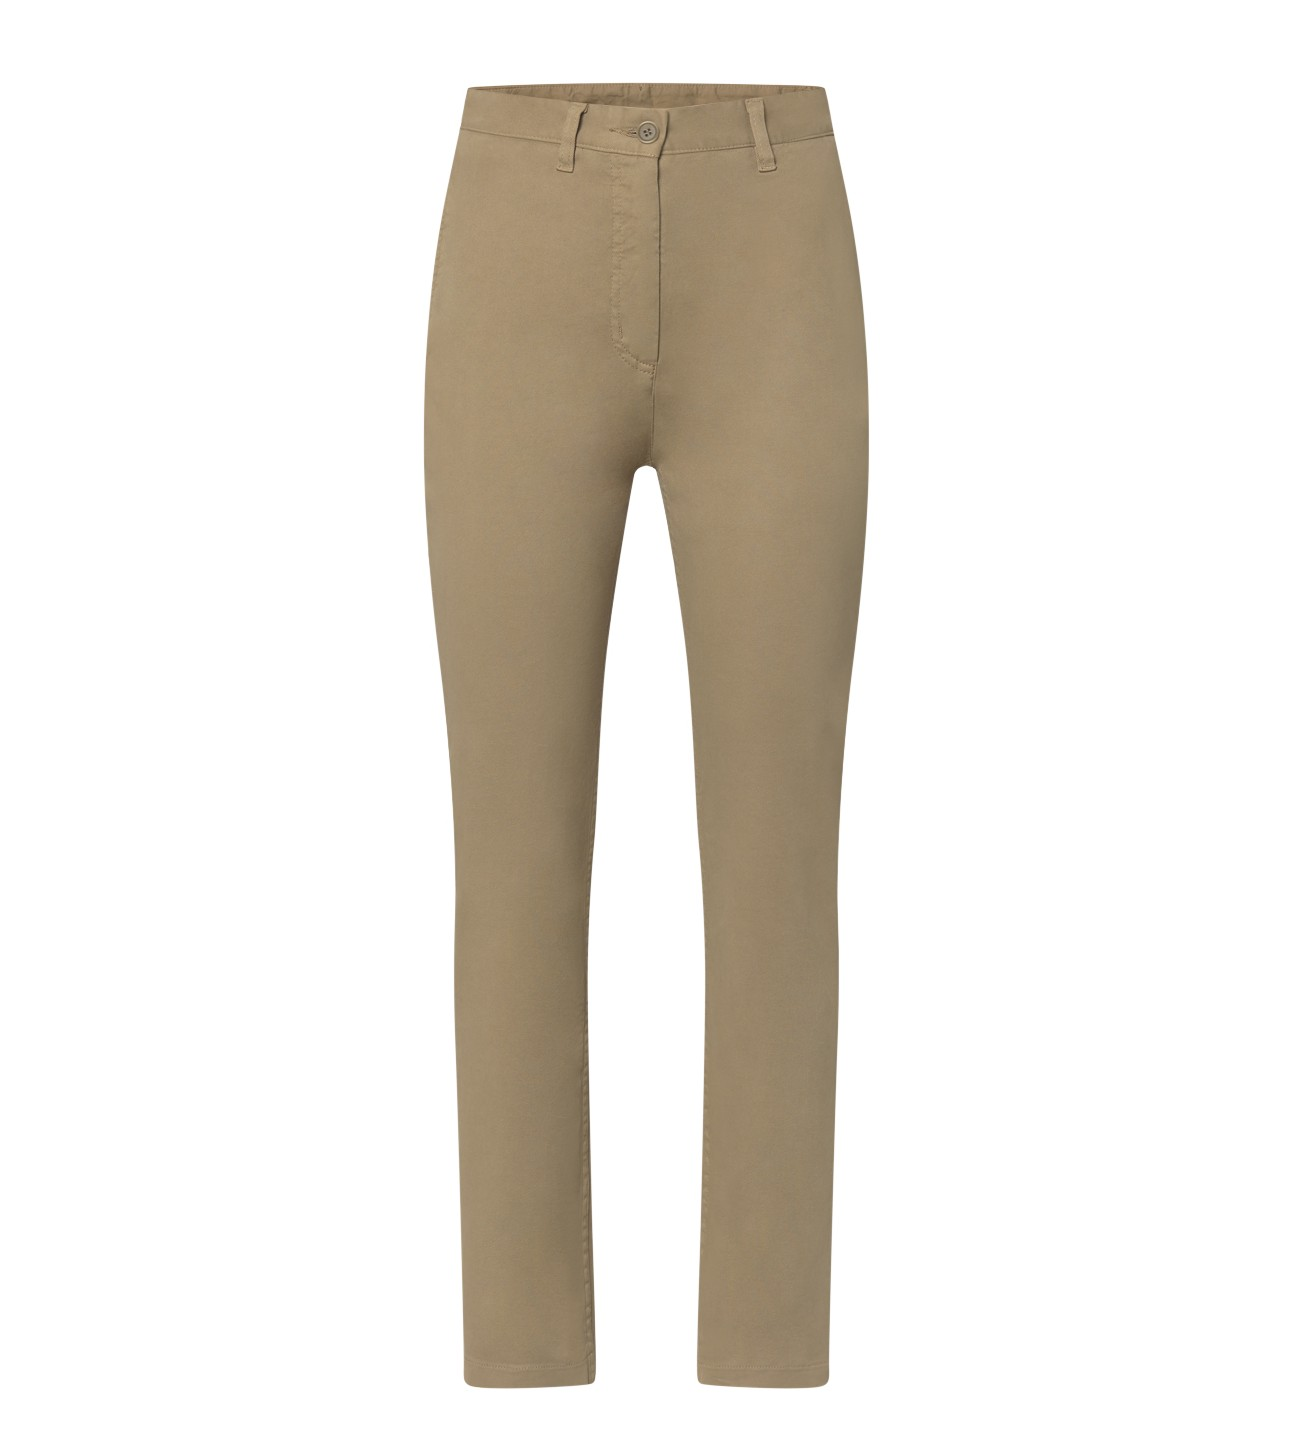 ASPESI_BASIC_CHINO_TROUSERS_MARIONA_FASHION_CLOTHING_WOMAN_SHOP_ONLINE_0118